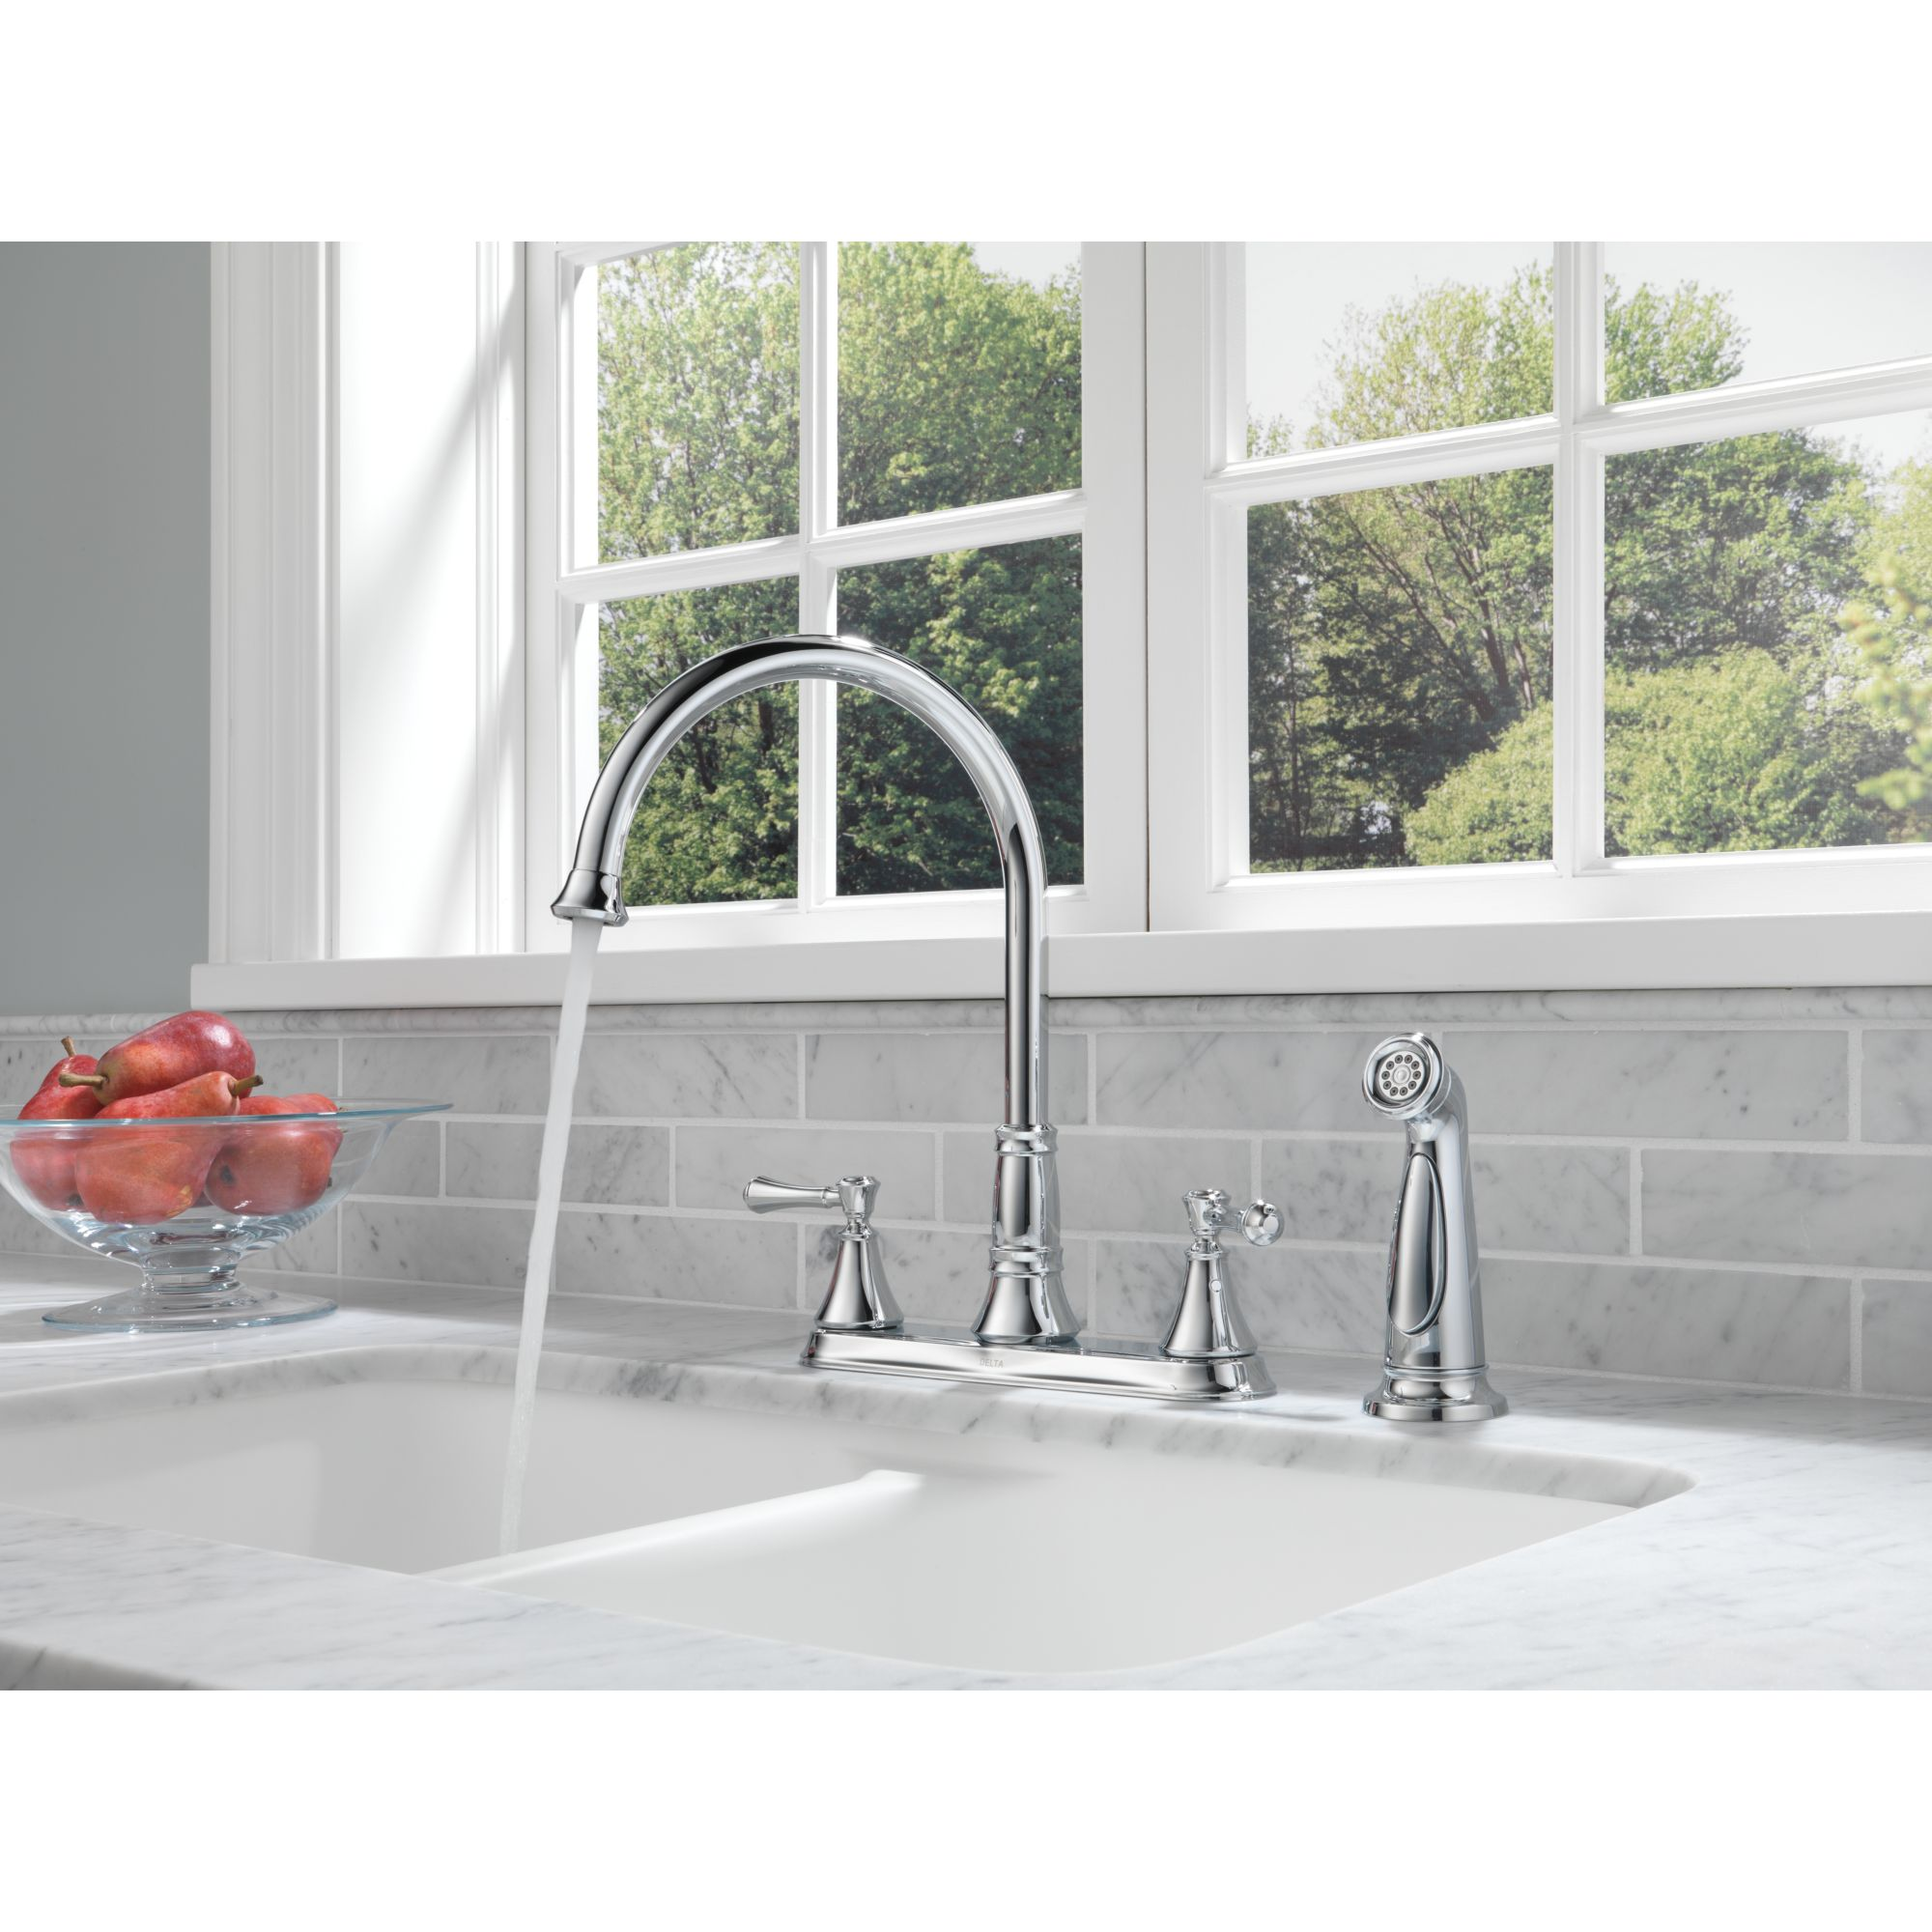 kitchen bathroom faucets all on sale in july kitchen faucet sale Delta CASSIDY Two Handle Kitchen Faucet with Spray